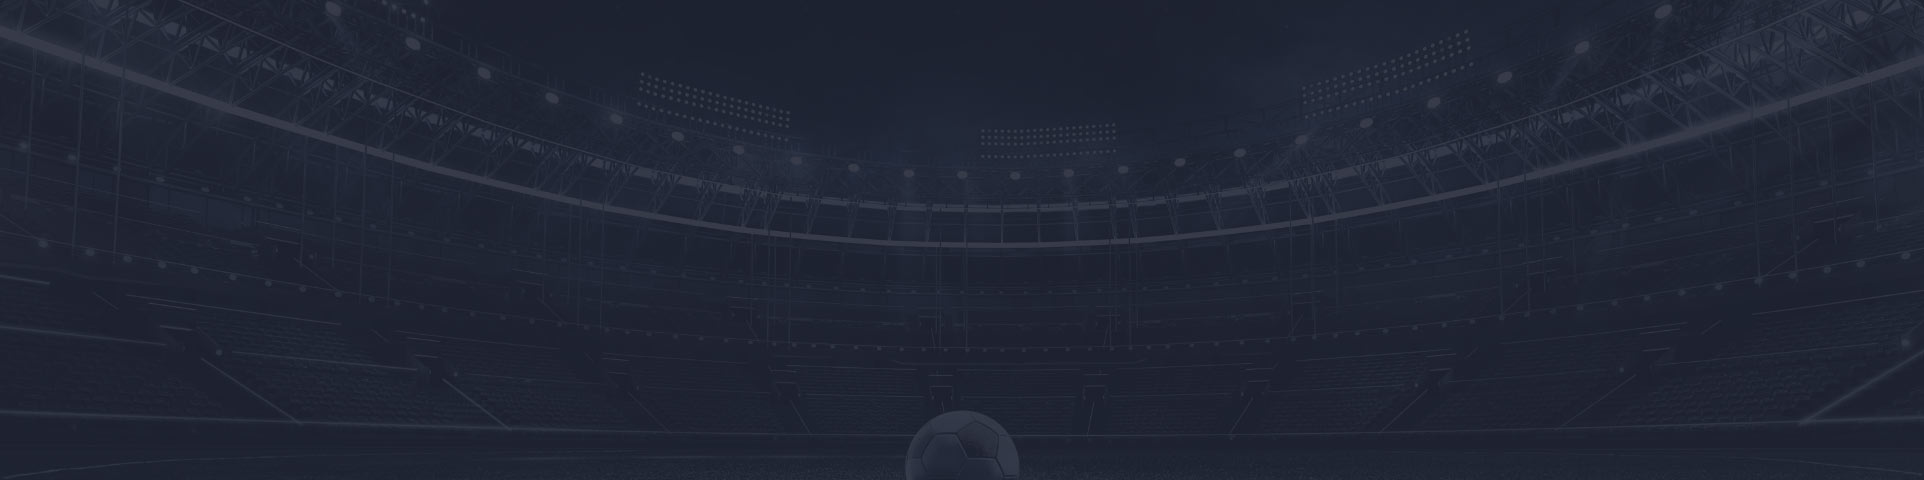 Sport banners background